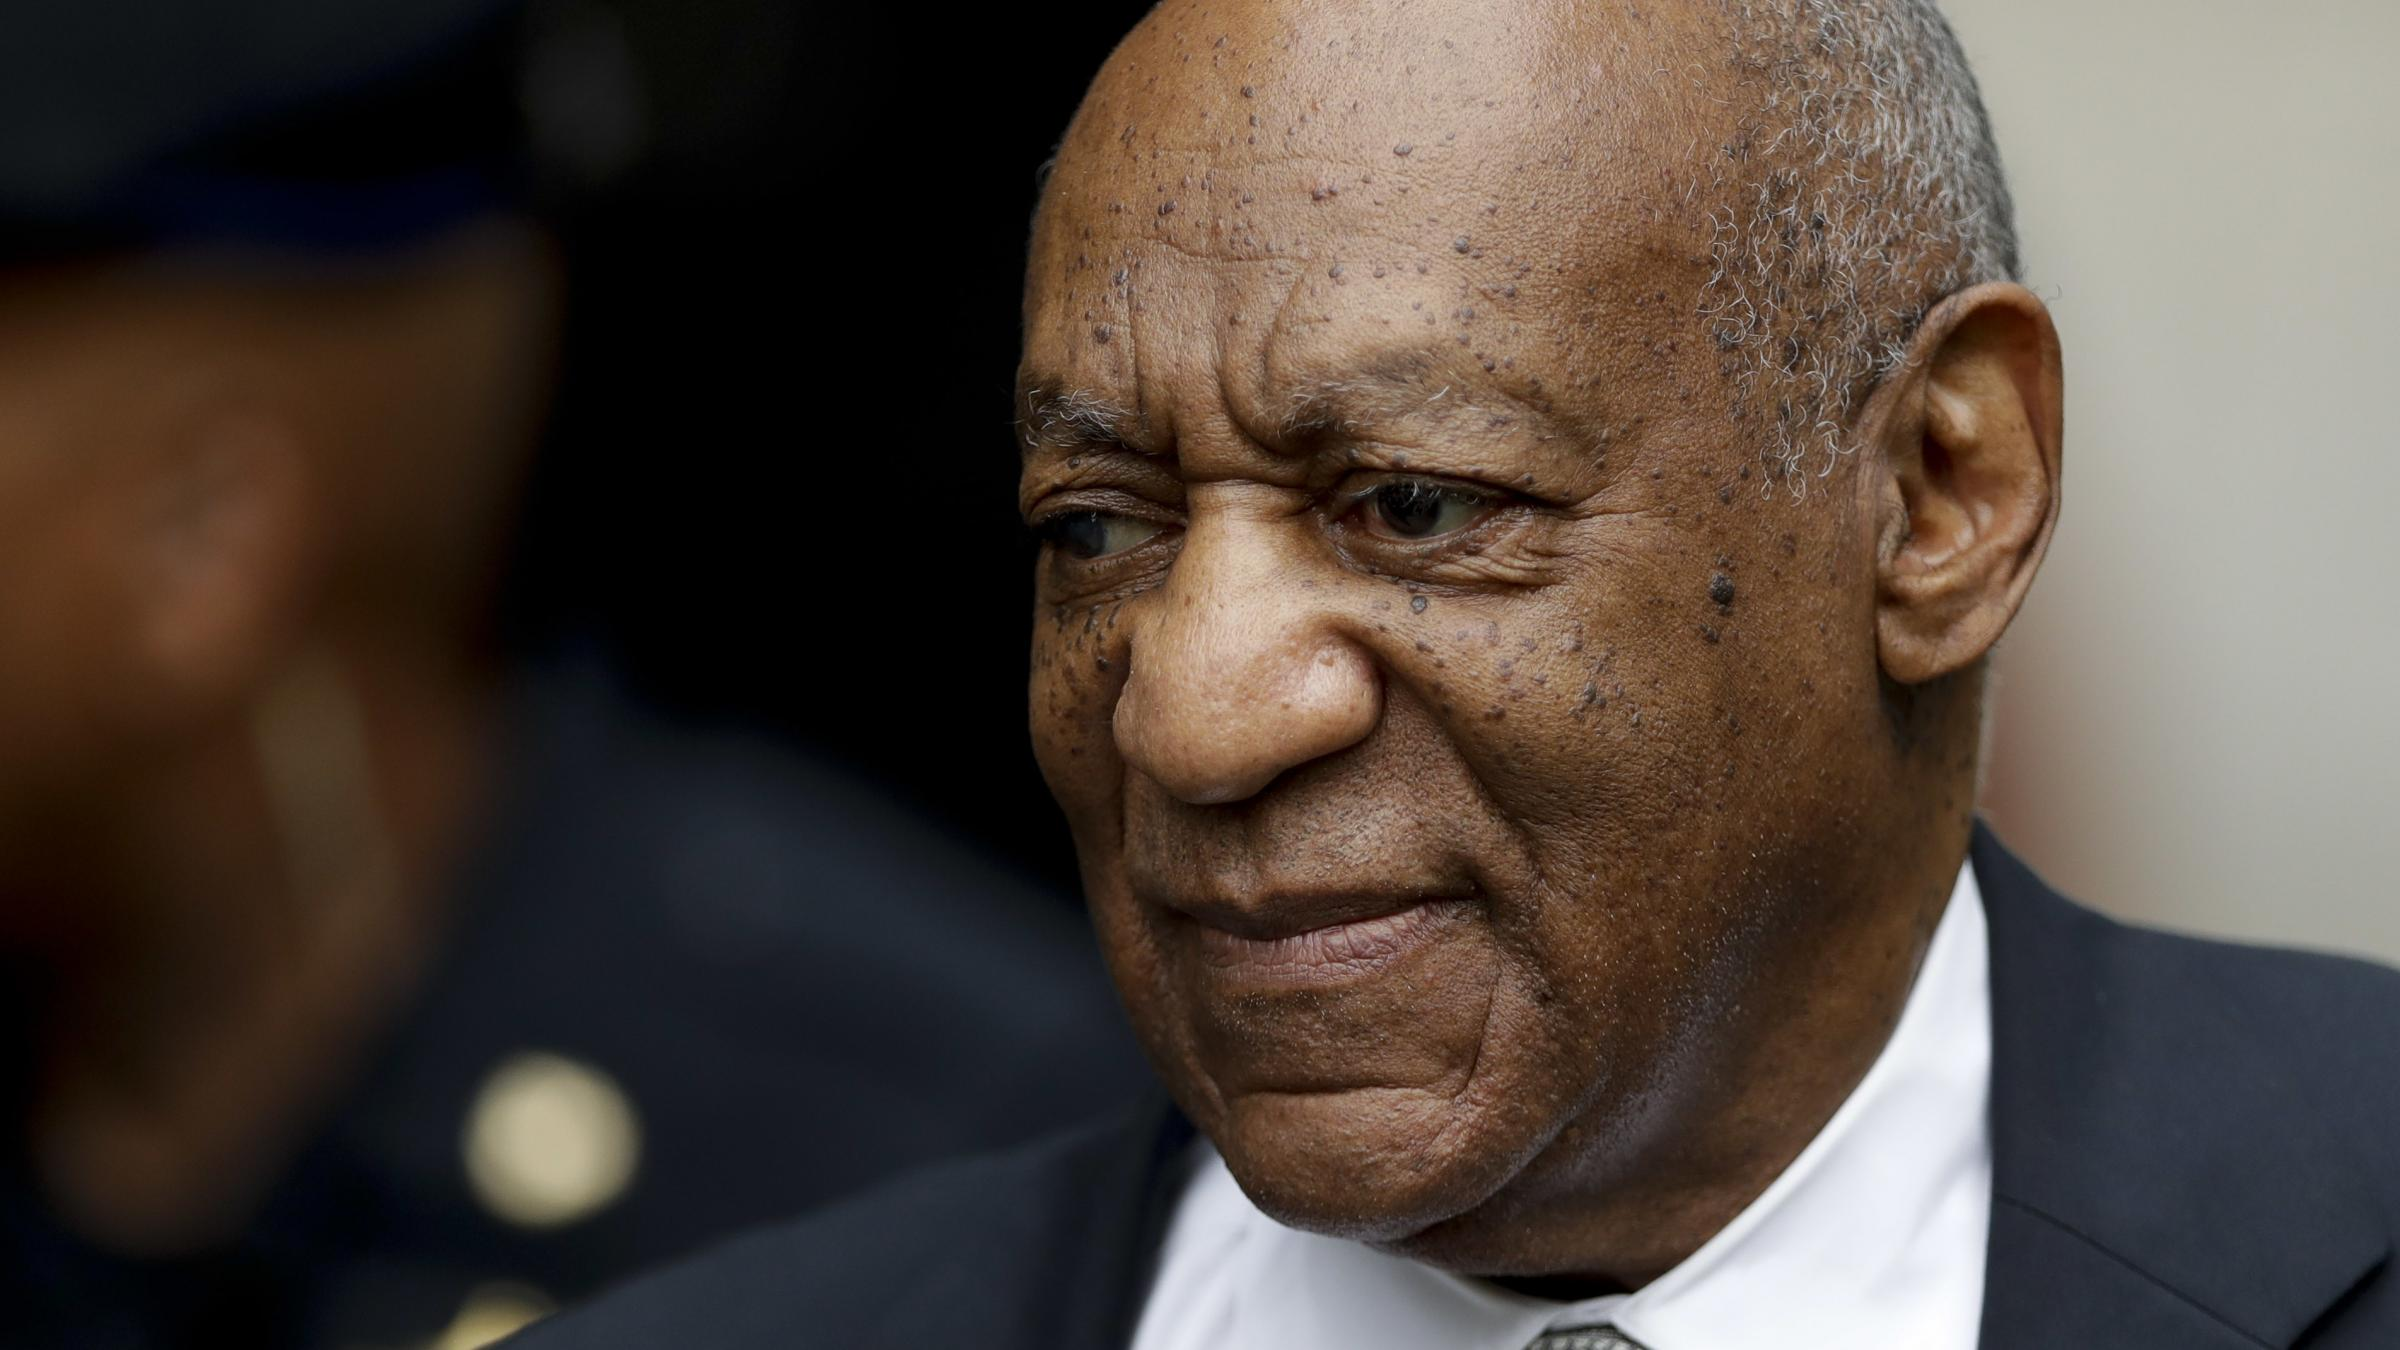 Bill Cosby accuser: 'We're coming for you'